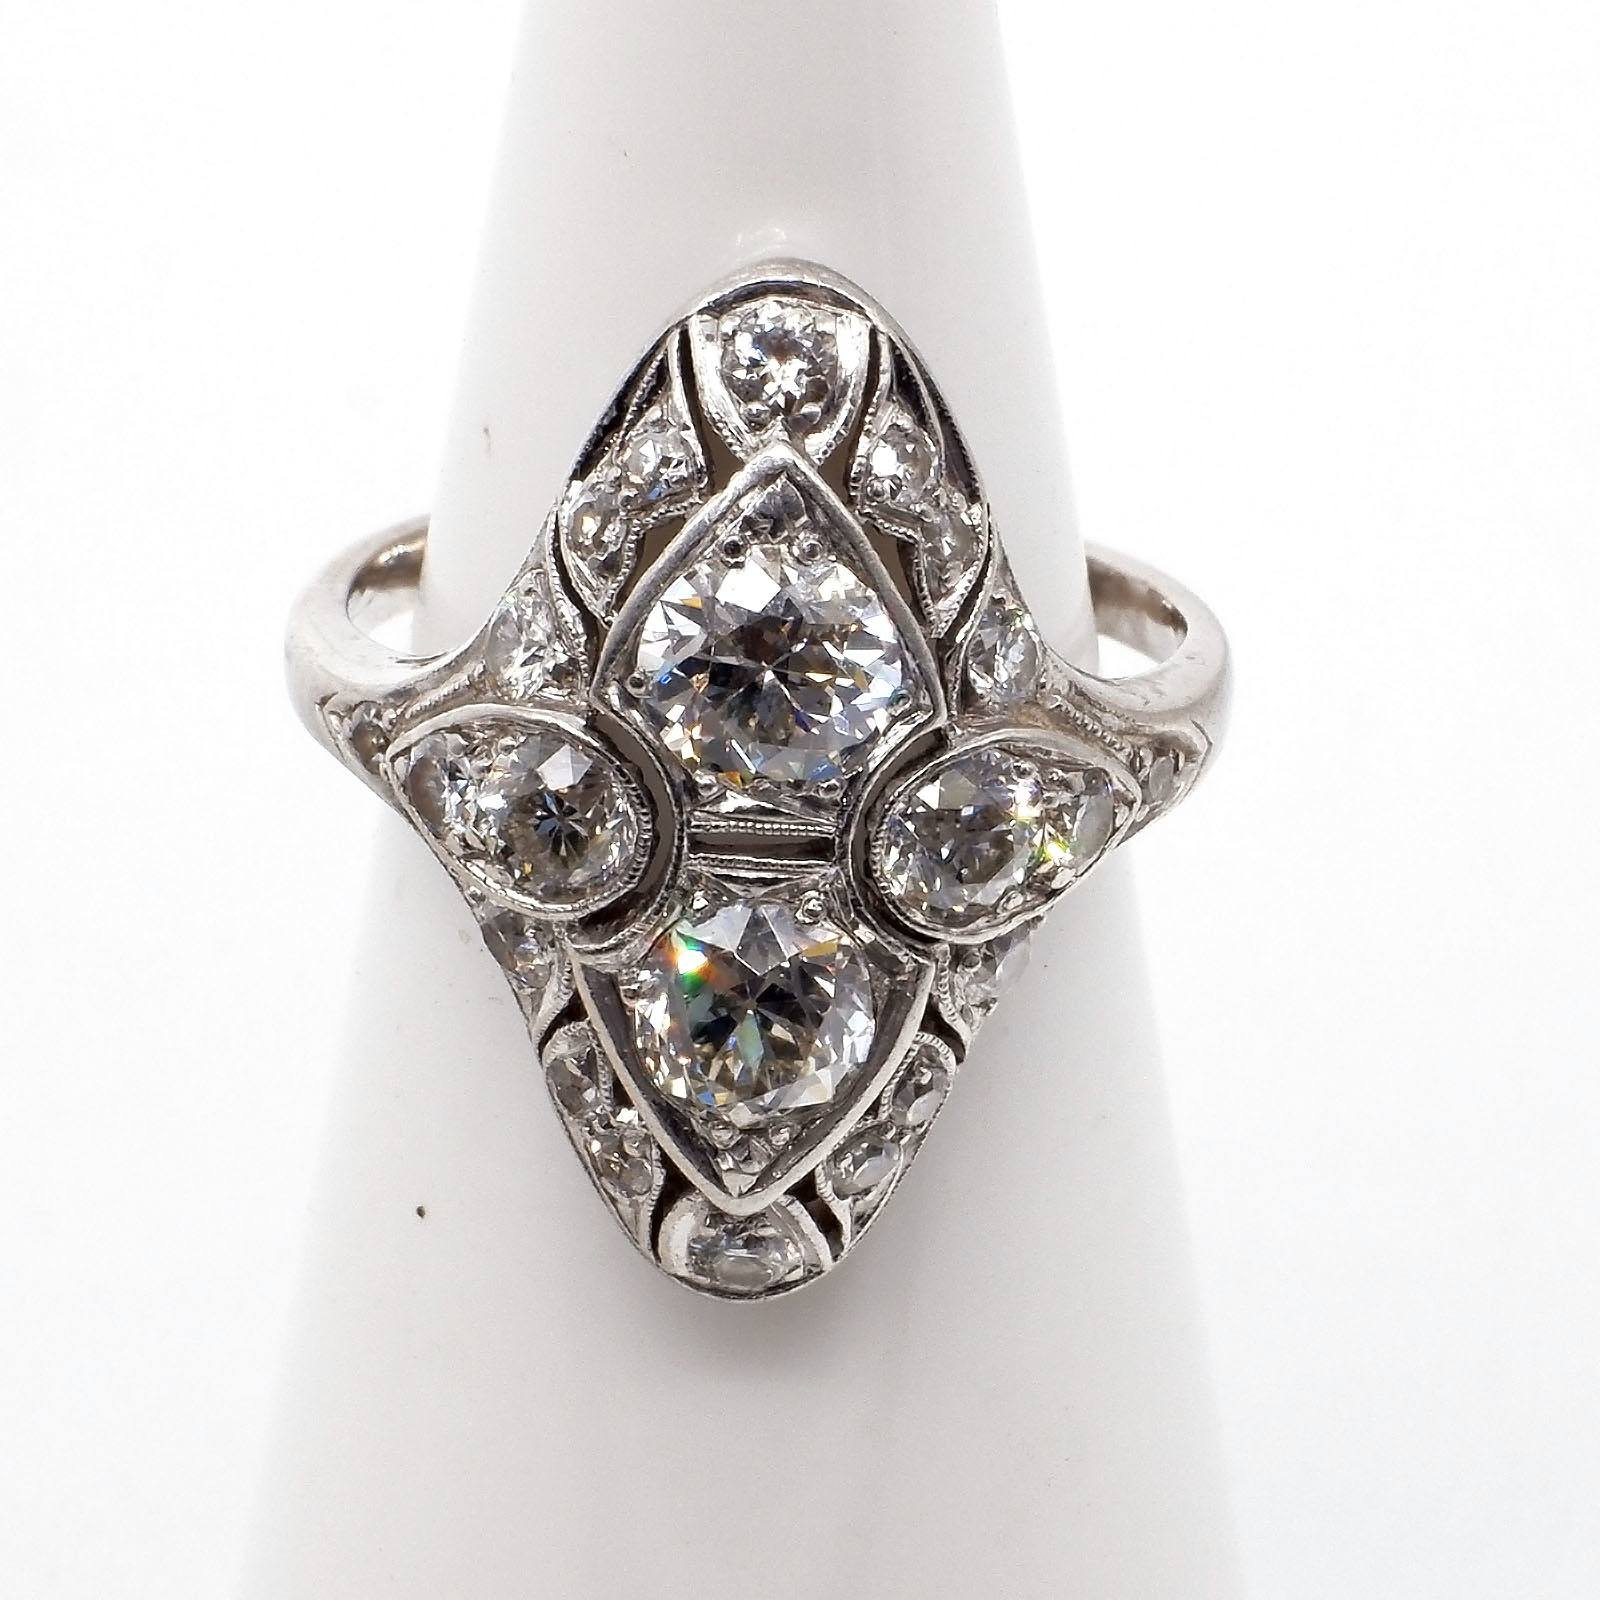 'Superb Art Deco Platinum Ring with Twelve Old European Cut Diamonds and Ten Old Single Cut Diamonds, All in Bead Setting in Separate Fields with Milgrain Edge in a Marquis Shaped Cluster'